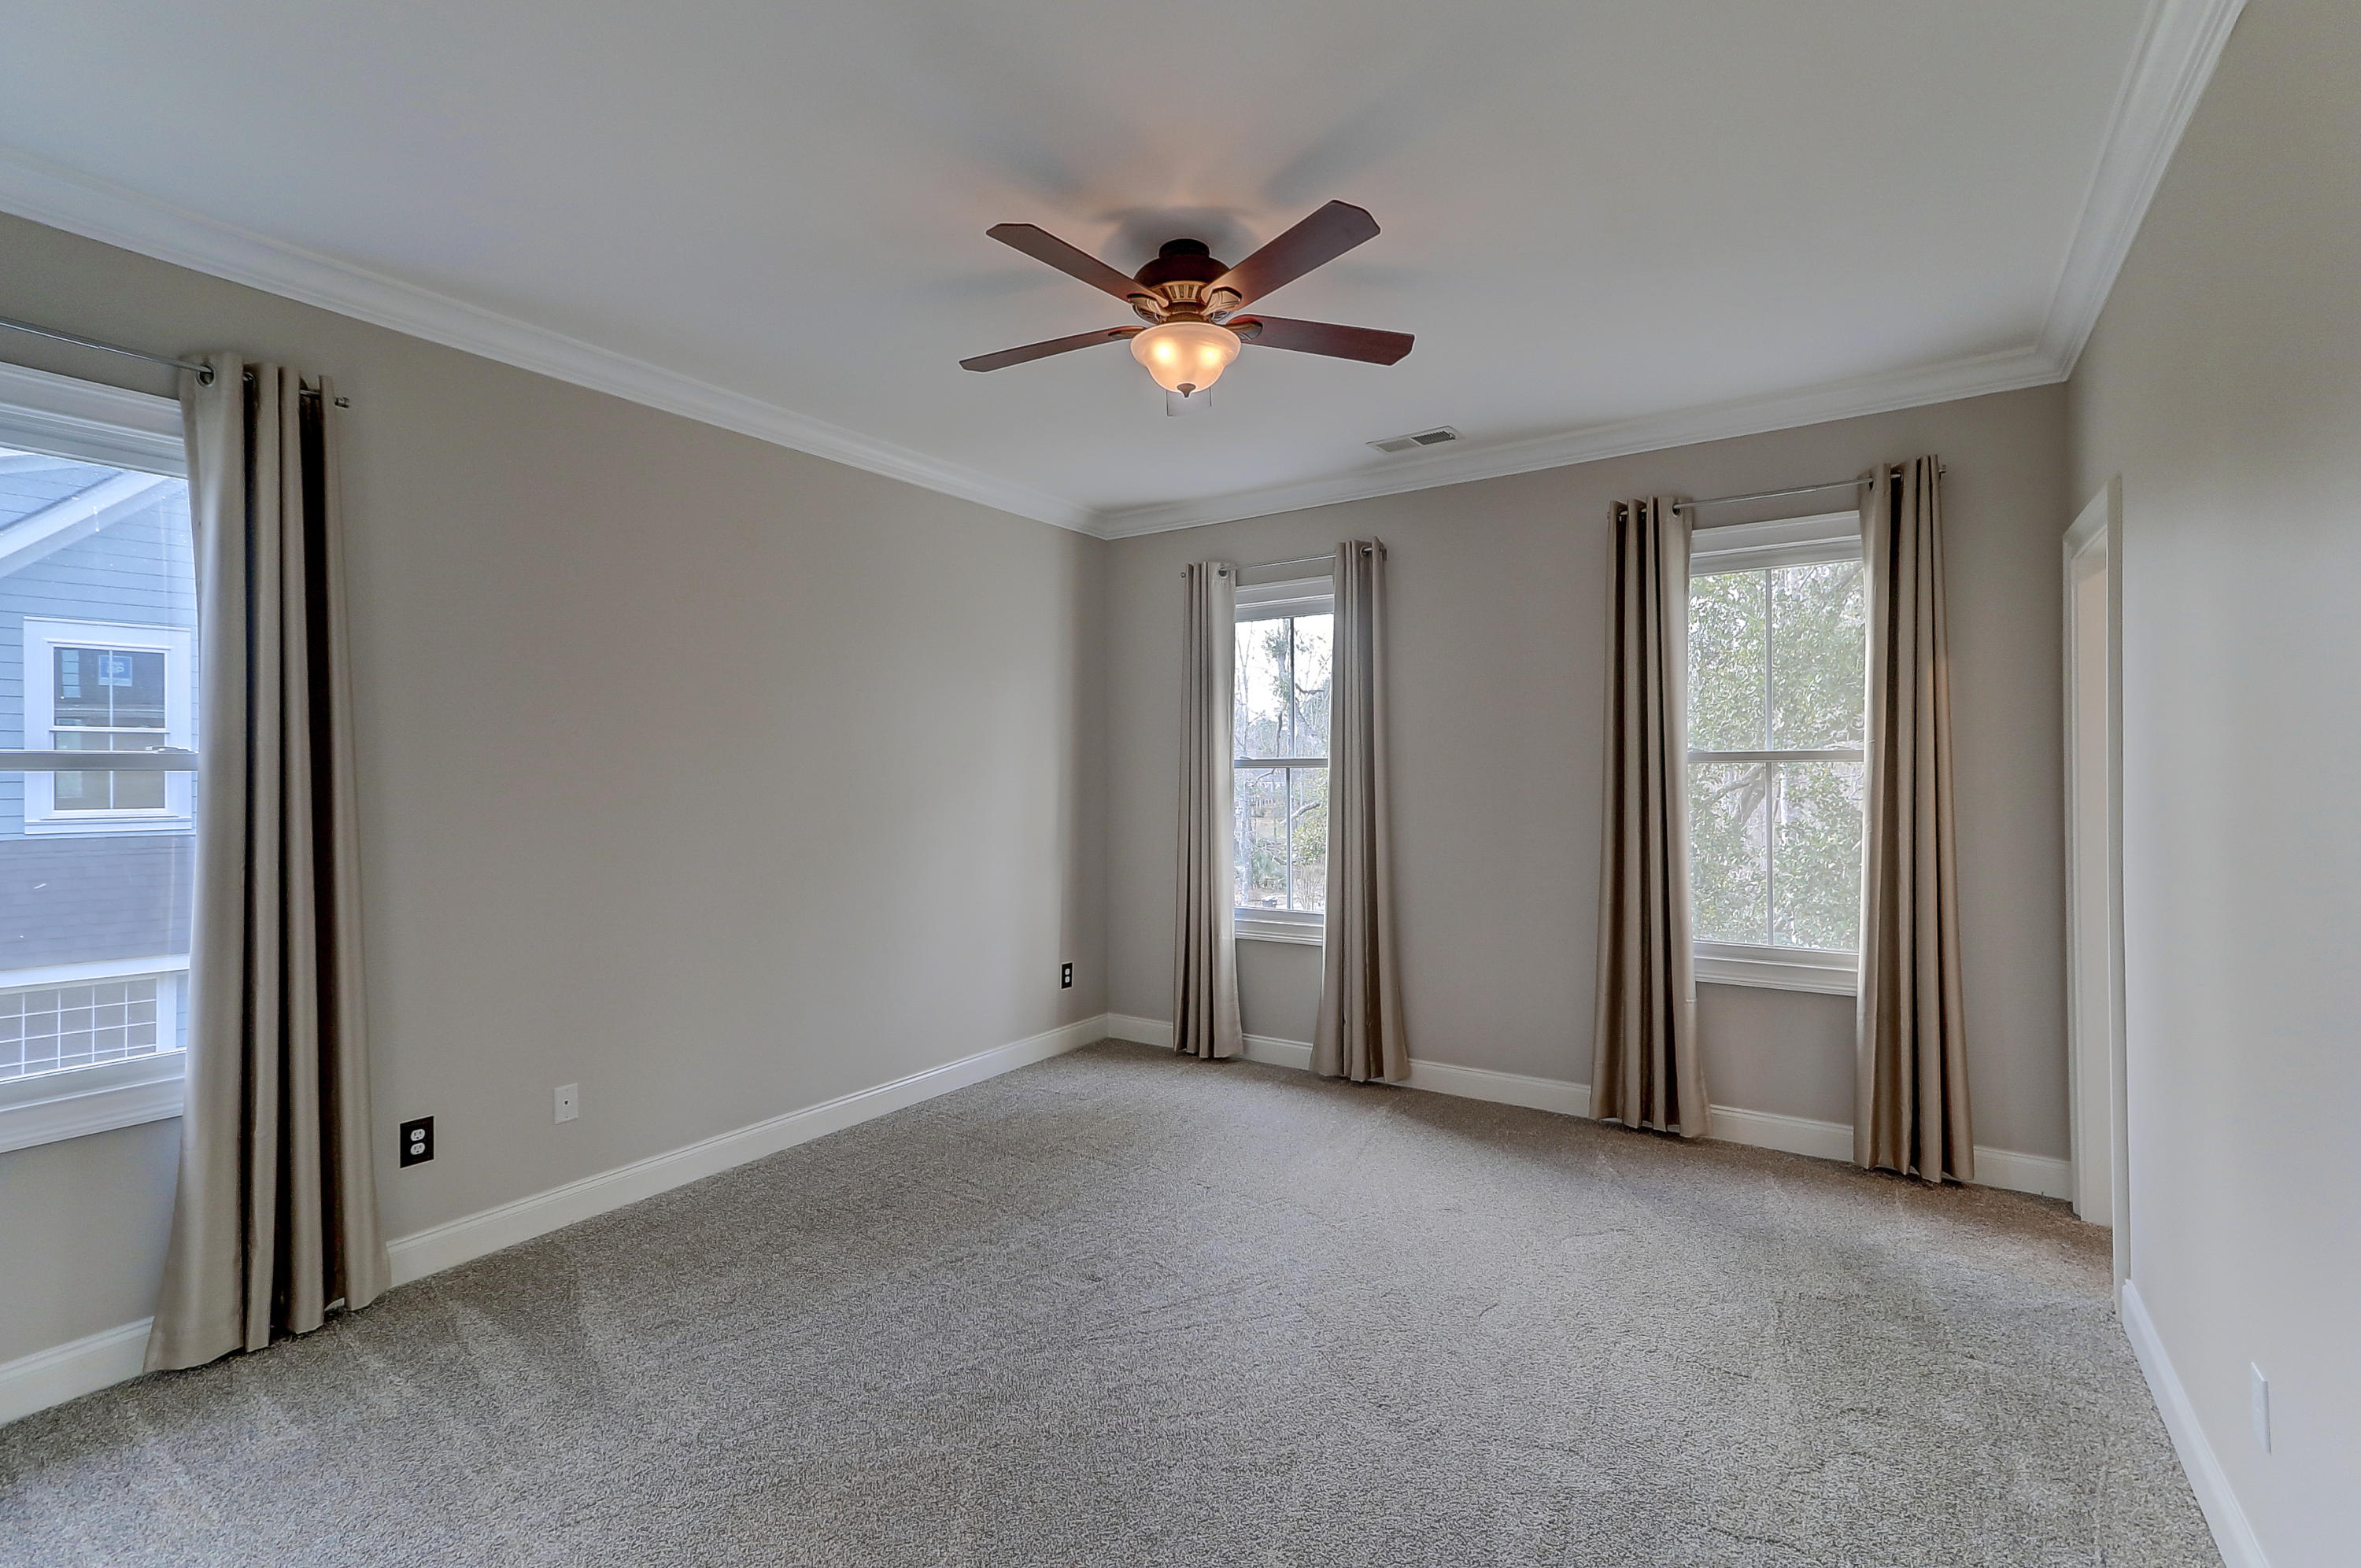 Dunes West Homes For Sale - 1764 Greenspoint, Mount Pleasant, SC - 42